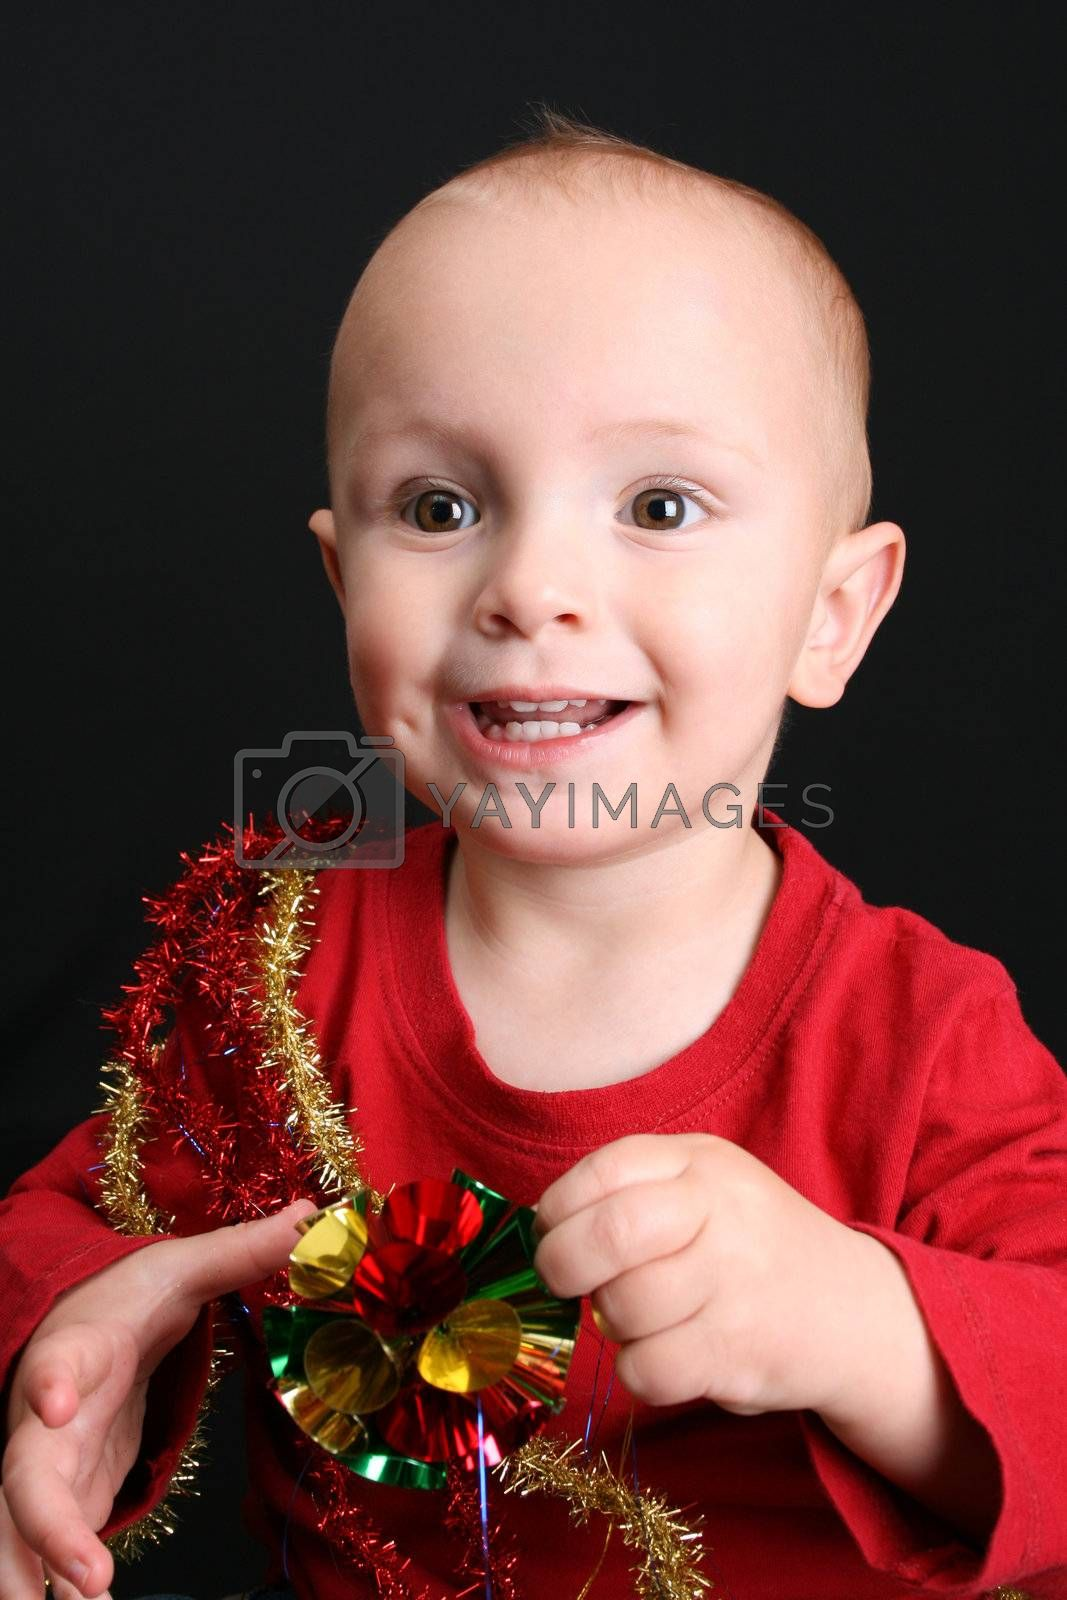 Toddler against a black background playing with christmas decorations